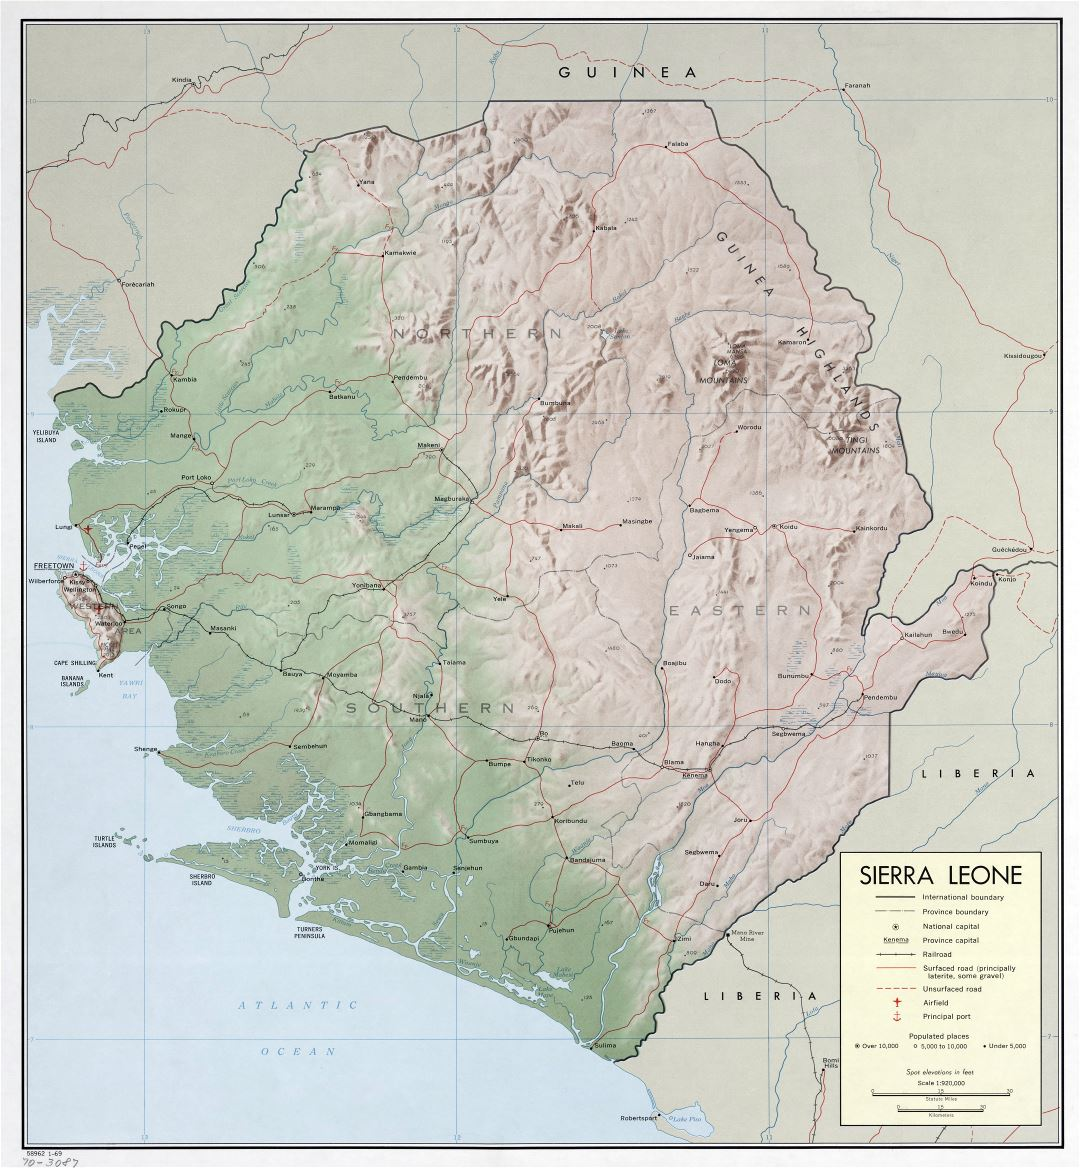 Large scale detailed political and administrative map of Sierra Leone with relief, roads, railroads, cities, ports and airports - 1969